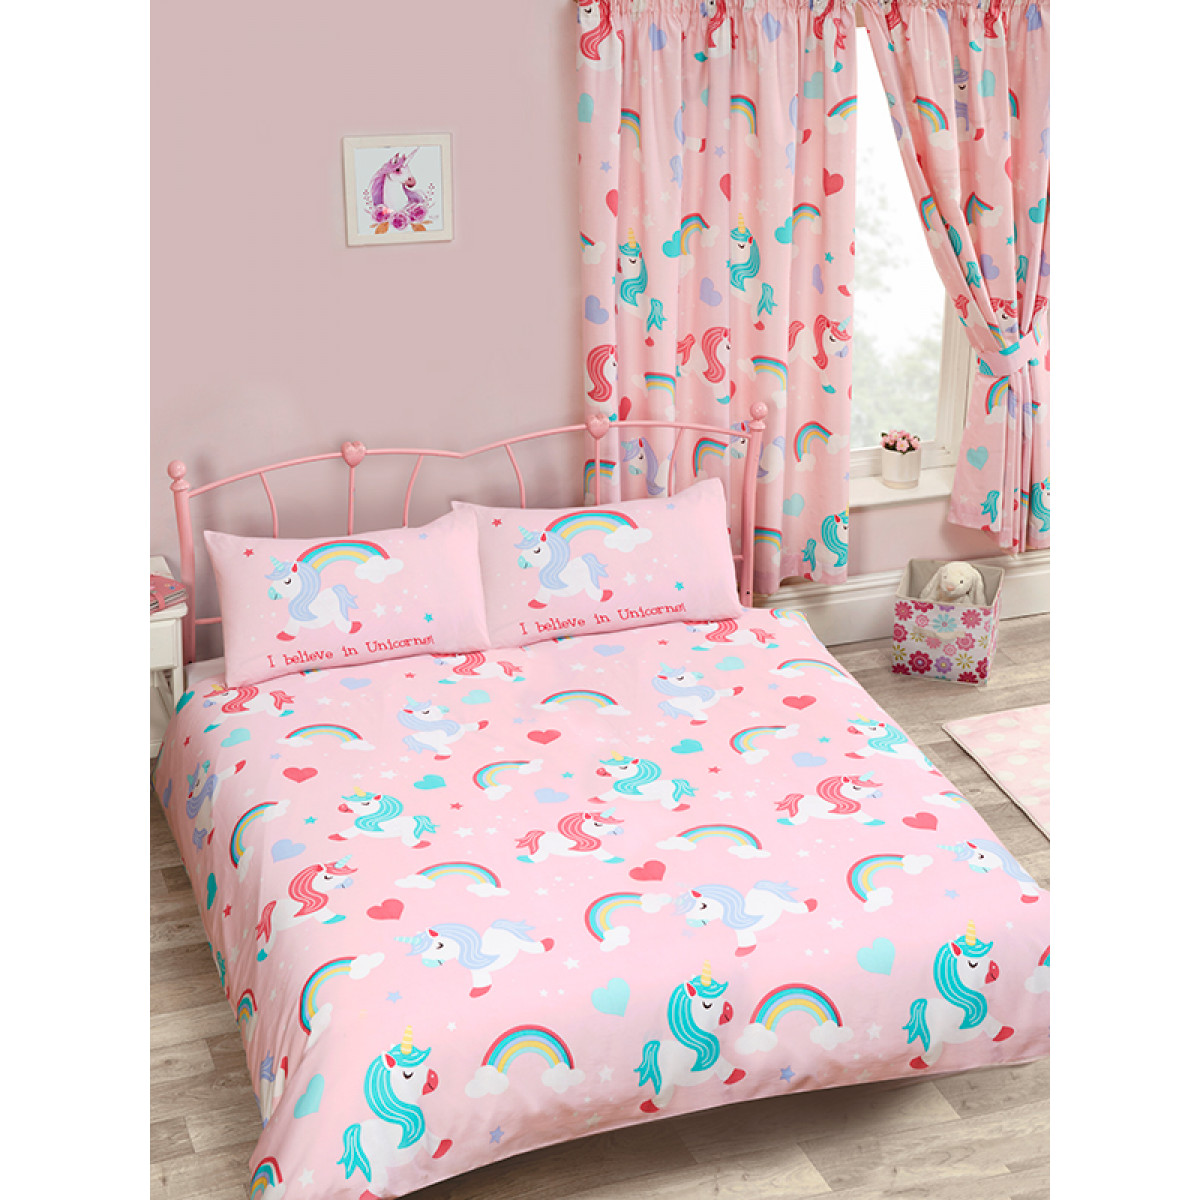 Unicorns Double Duvet Cover I Believe In Unicorns Bedding